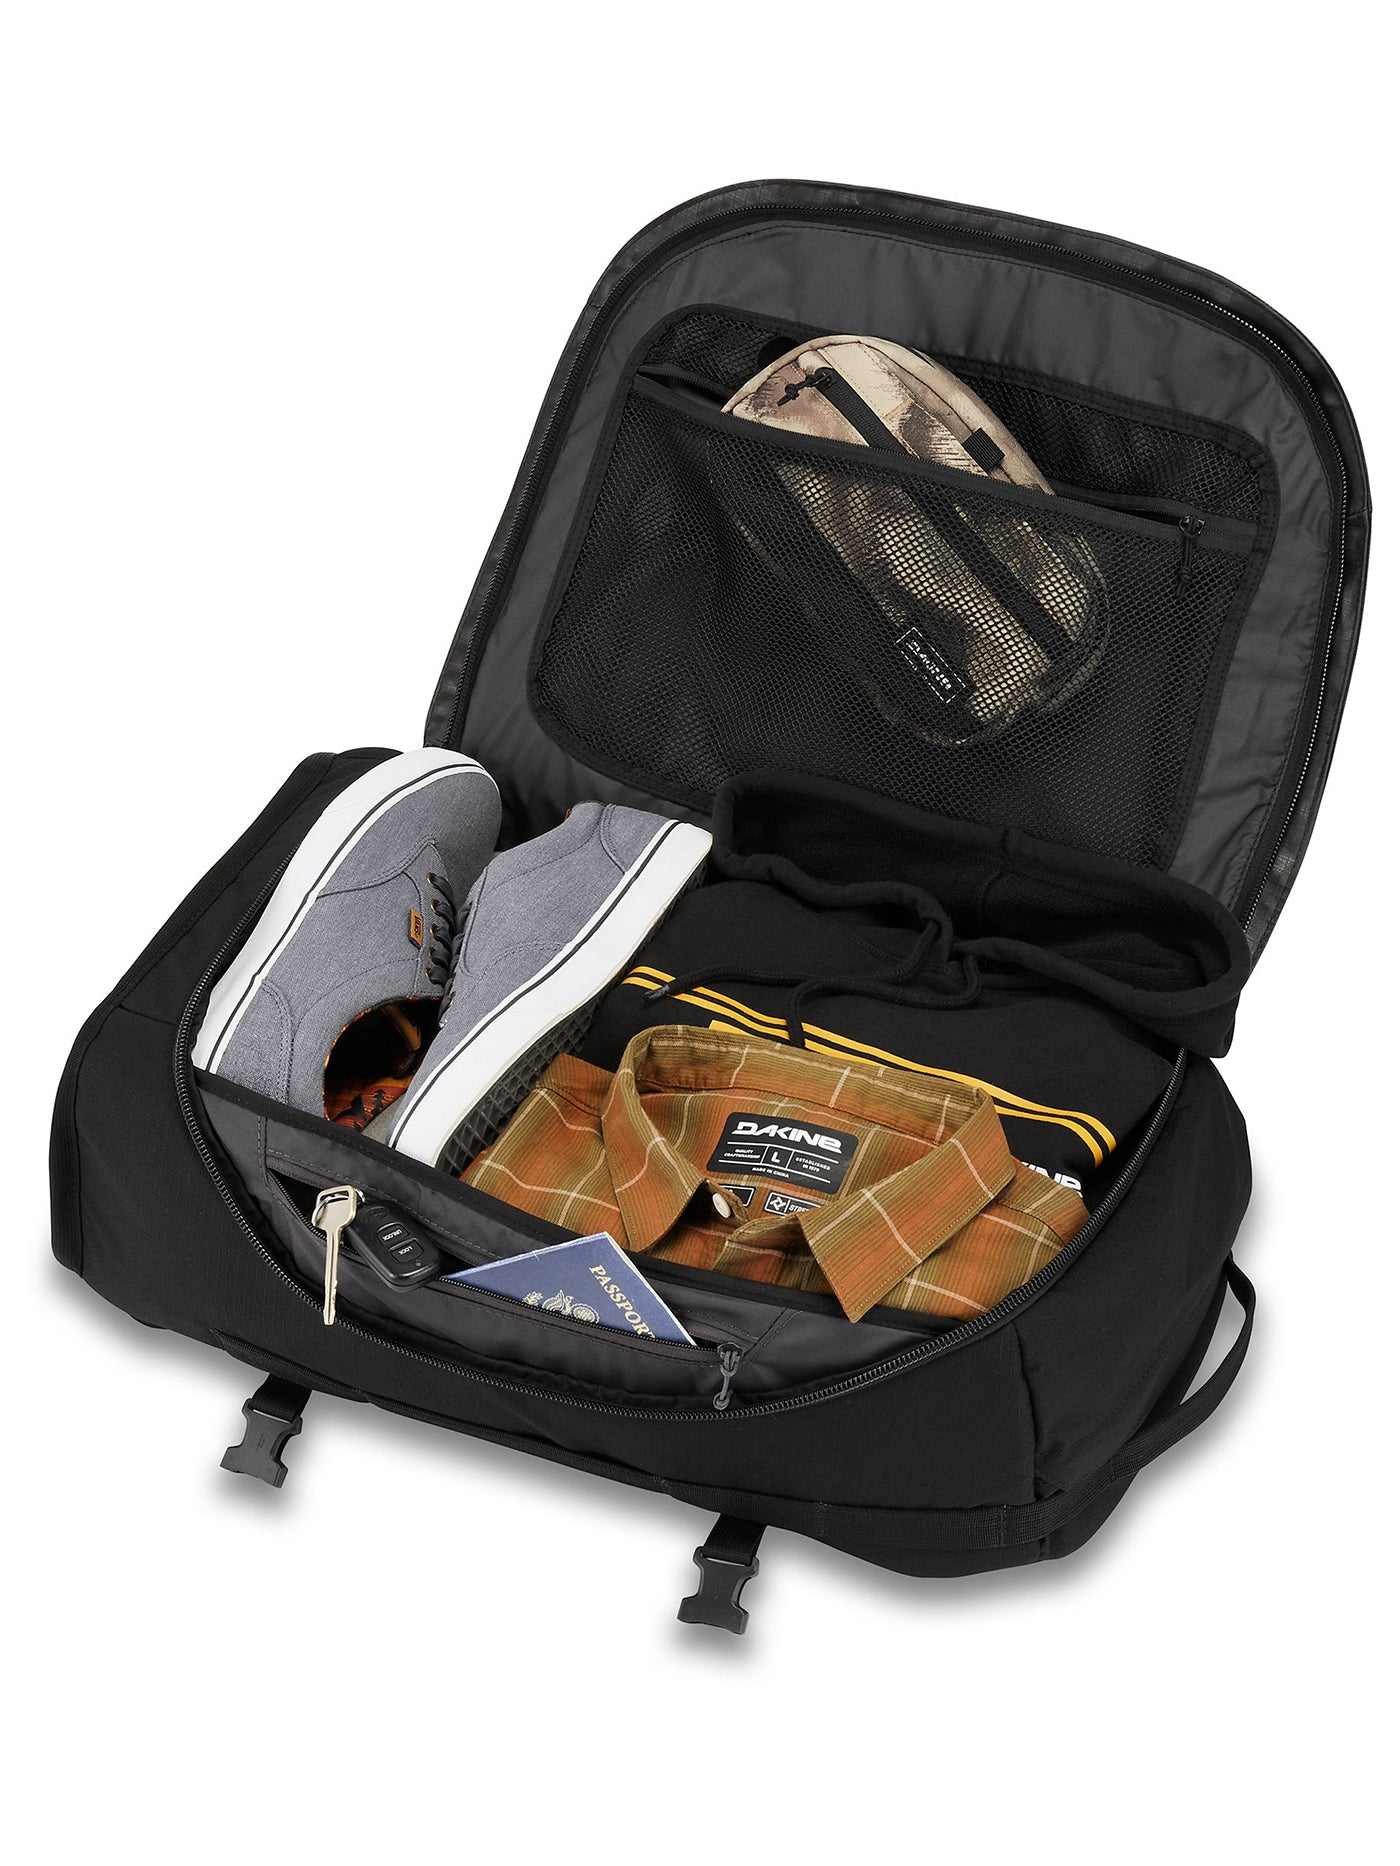 Ranger 45L Travel Bag